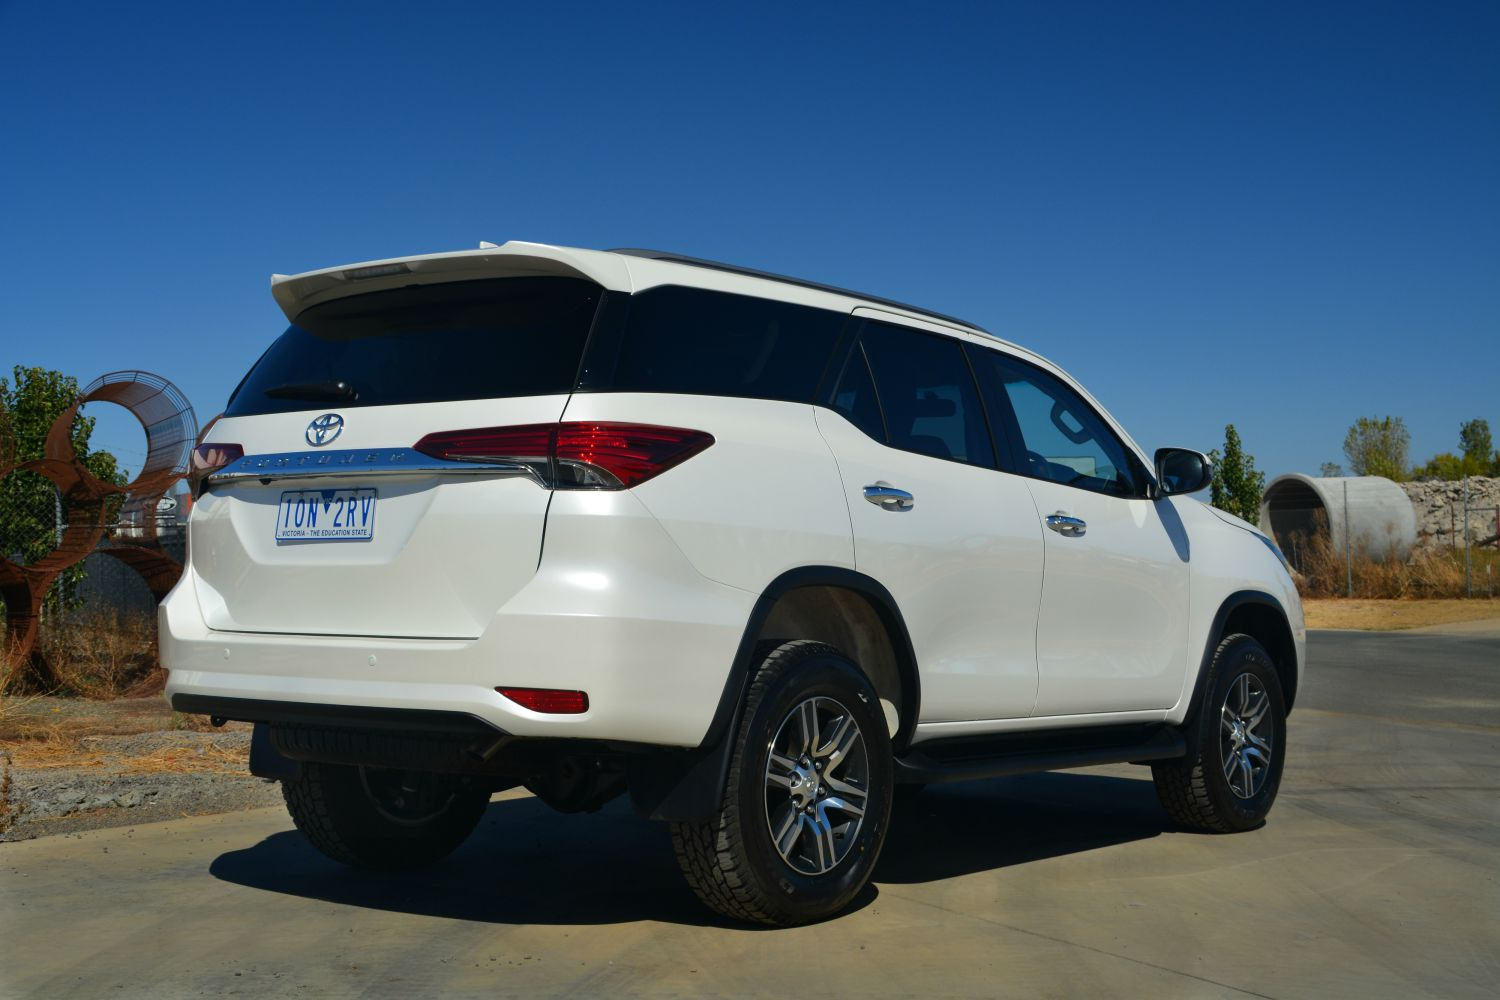 Toyota Fortuner long-term review: Exterior and interior